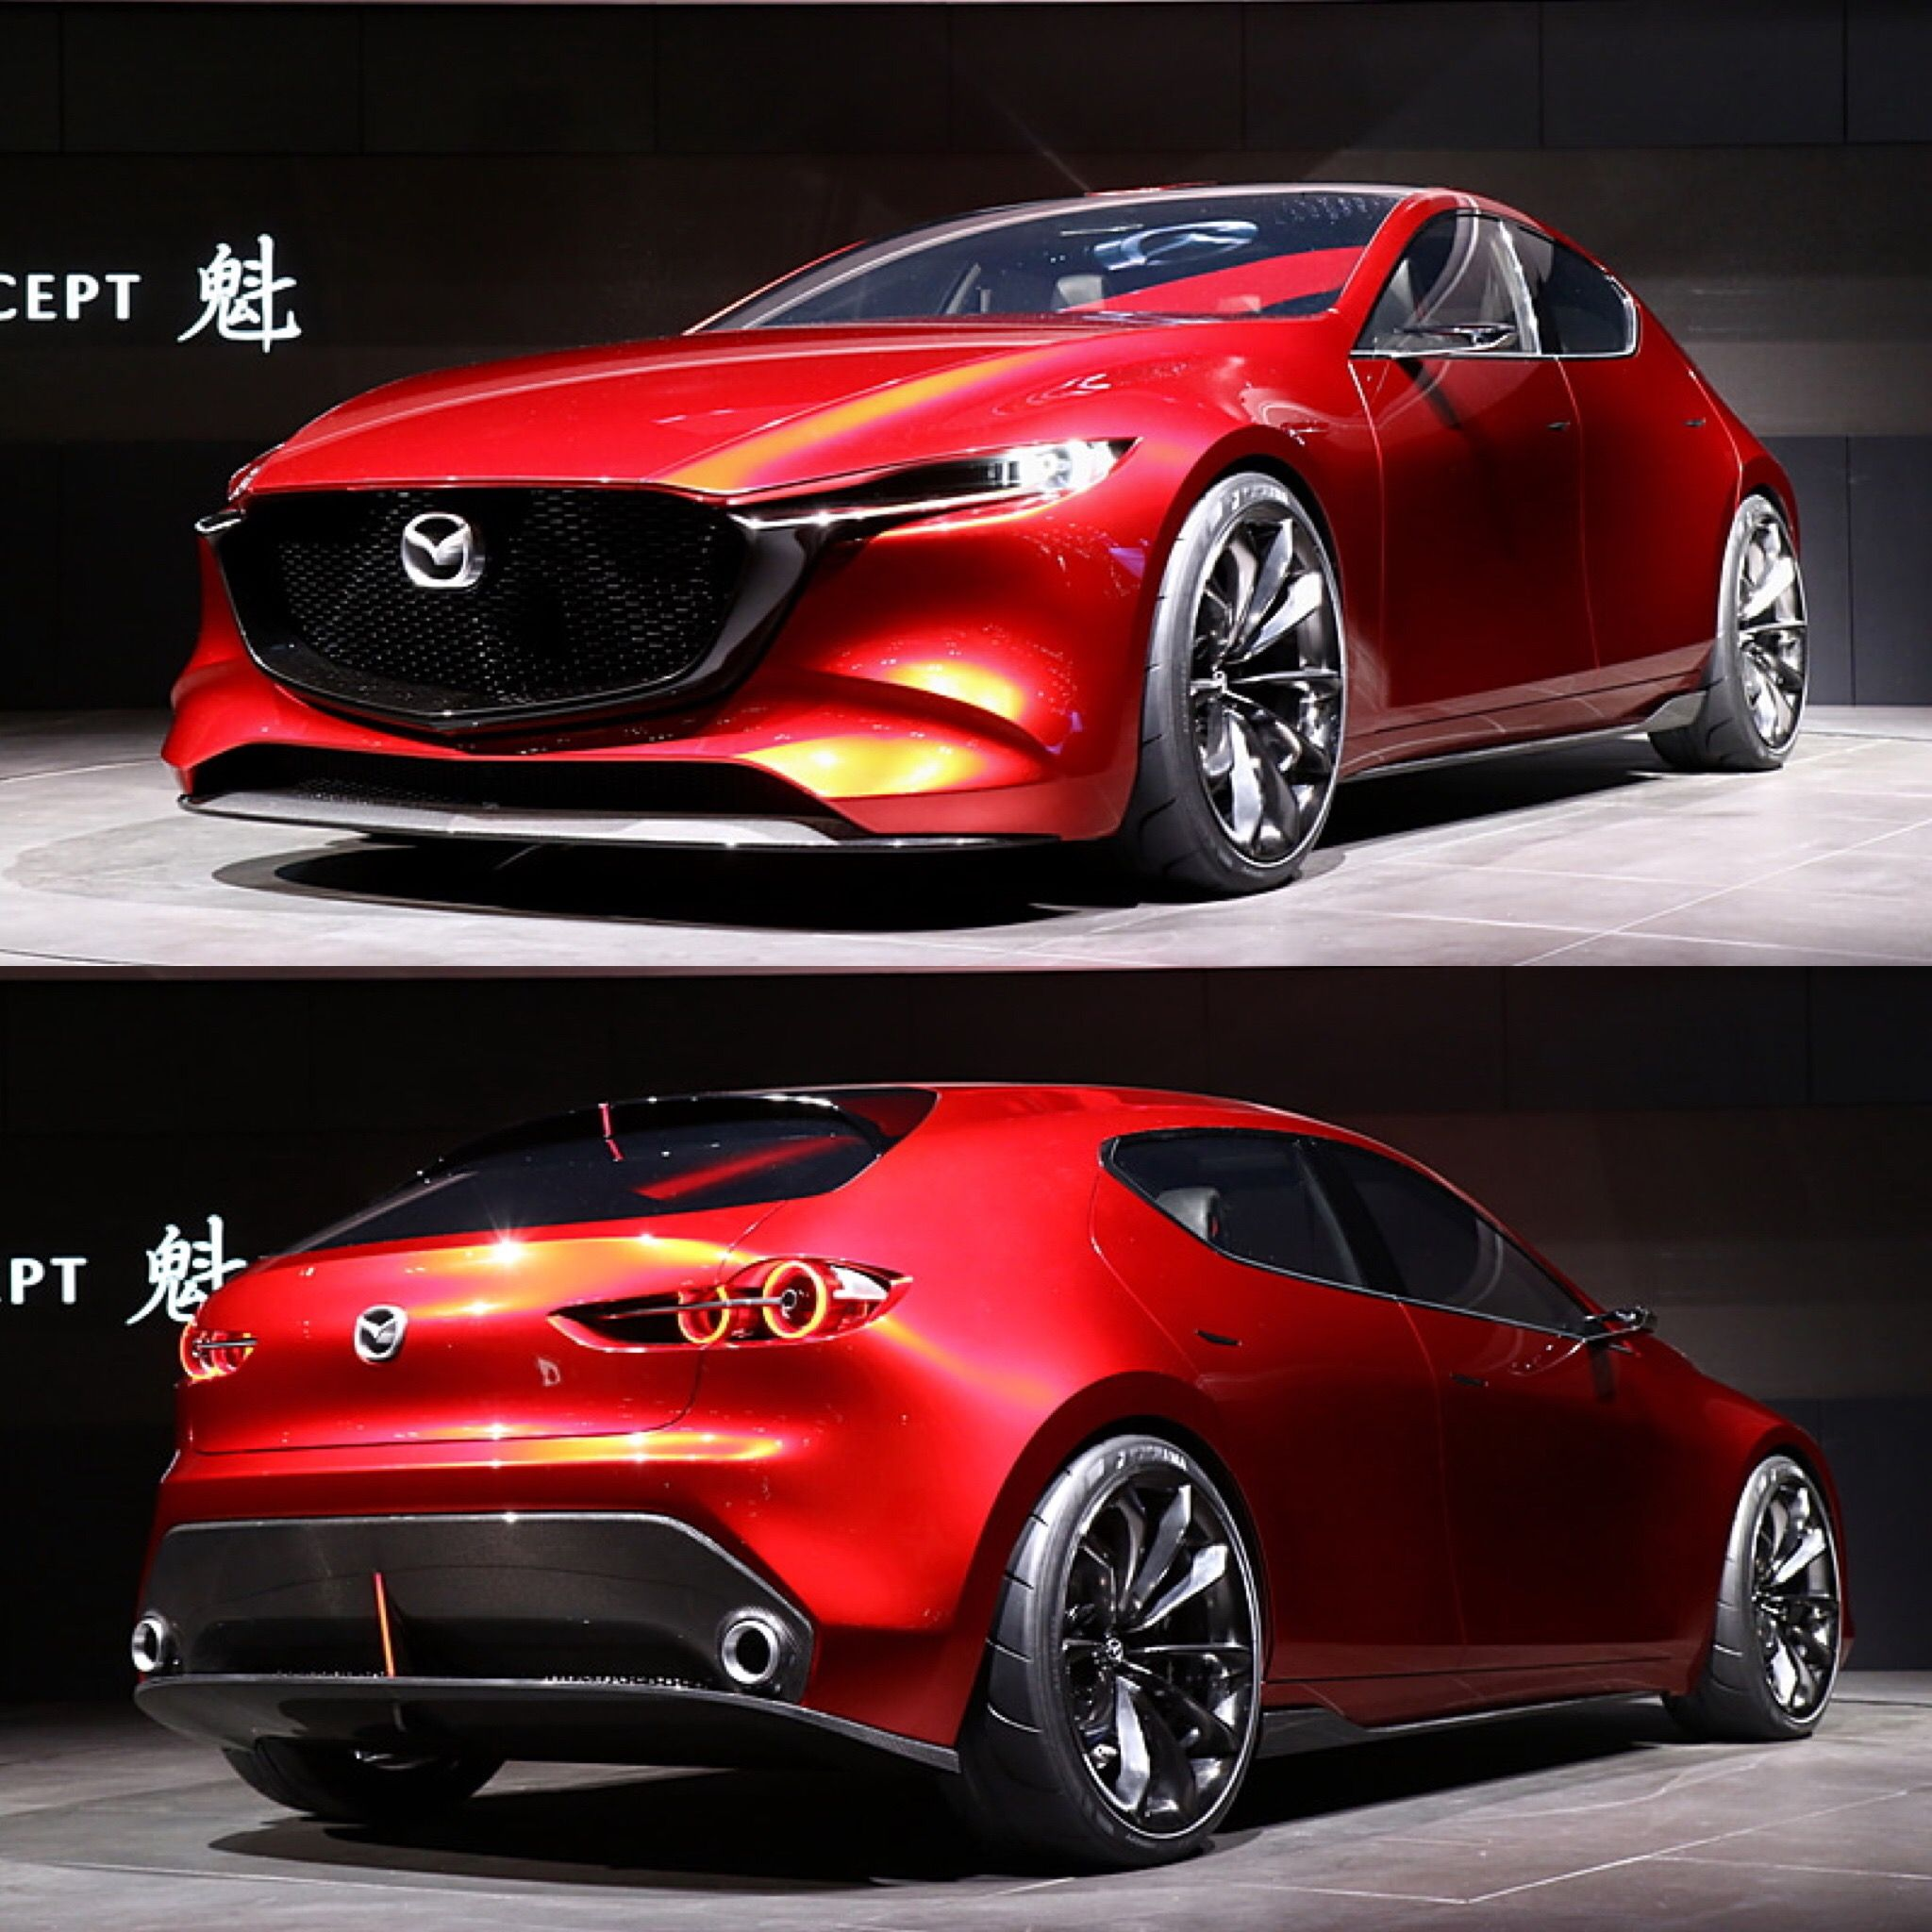 Download wallpapers mazda 3 4k 2018 cars new mazda 3 tokyo download wallpapers mazda 3 4k 2018 cars new mazda 3 tokyo motor show mazda kai concept mazda cars wallpapers pinterest mazda cars and auto fandeluxe Images